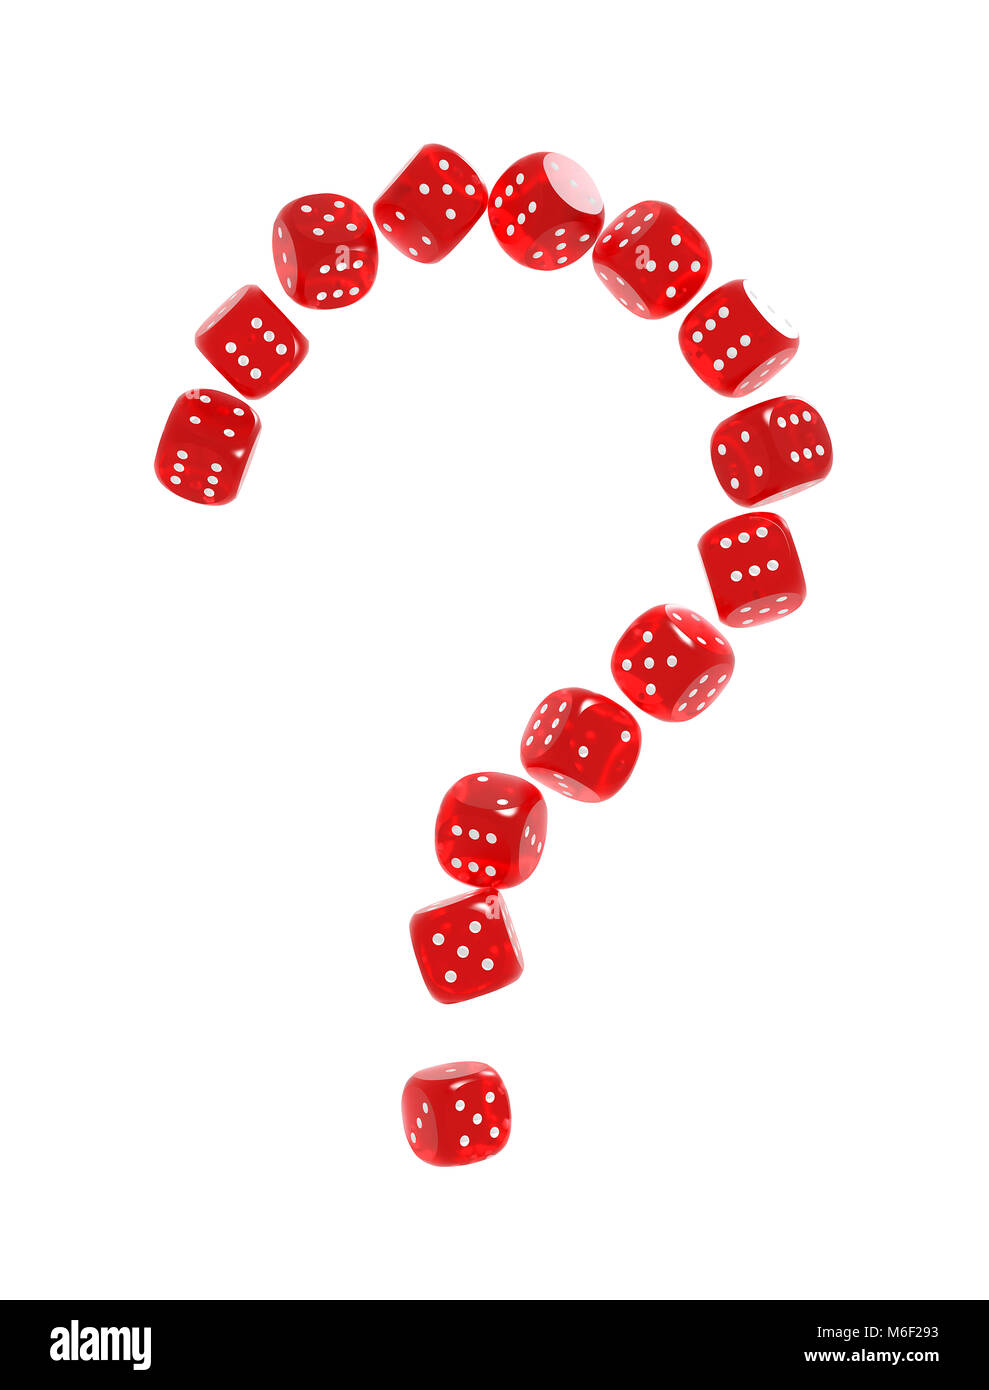 Question mark made of red gambling dices. Risk behind gambling concept - Stock Image